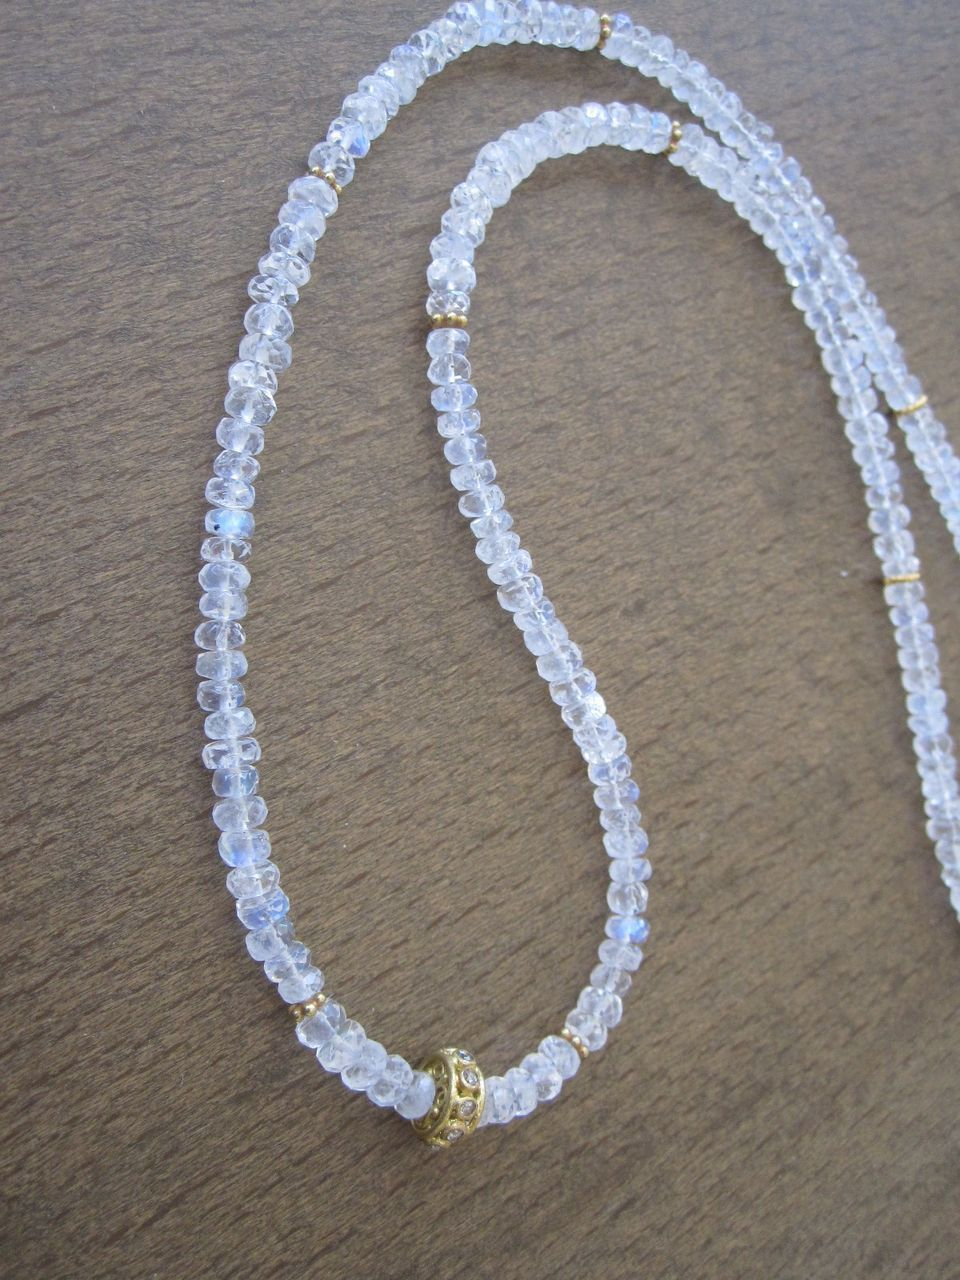 "18K Solid Gold~AAA Ceylon Moonstone  & Diamond Necklace 18""~ 2014"